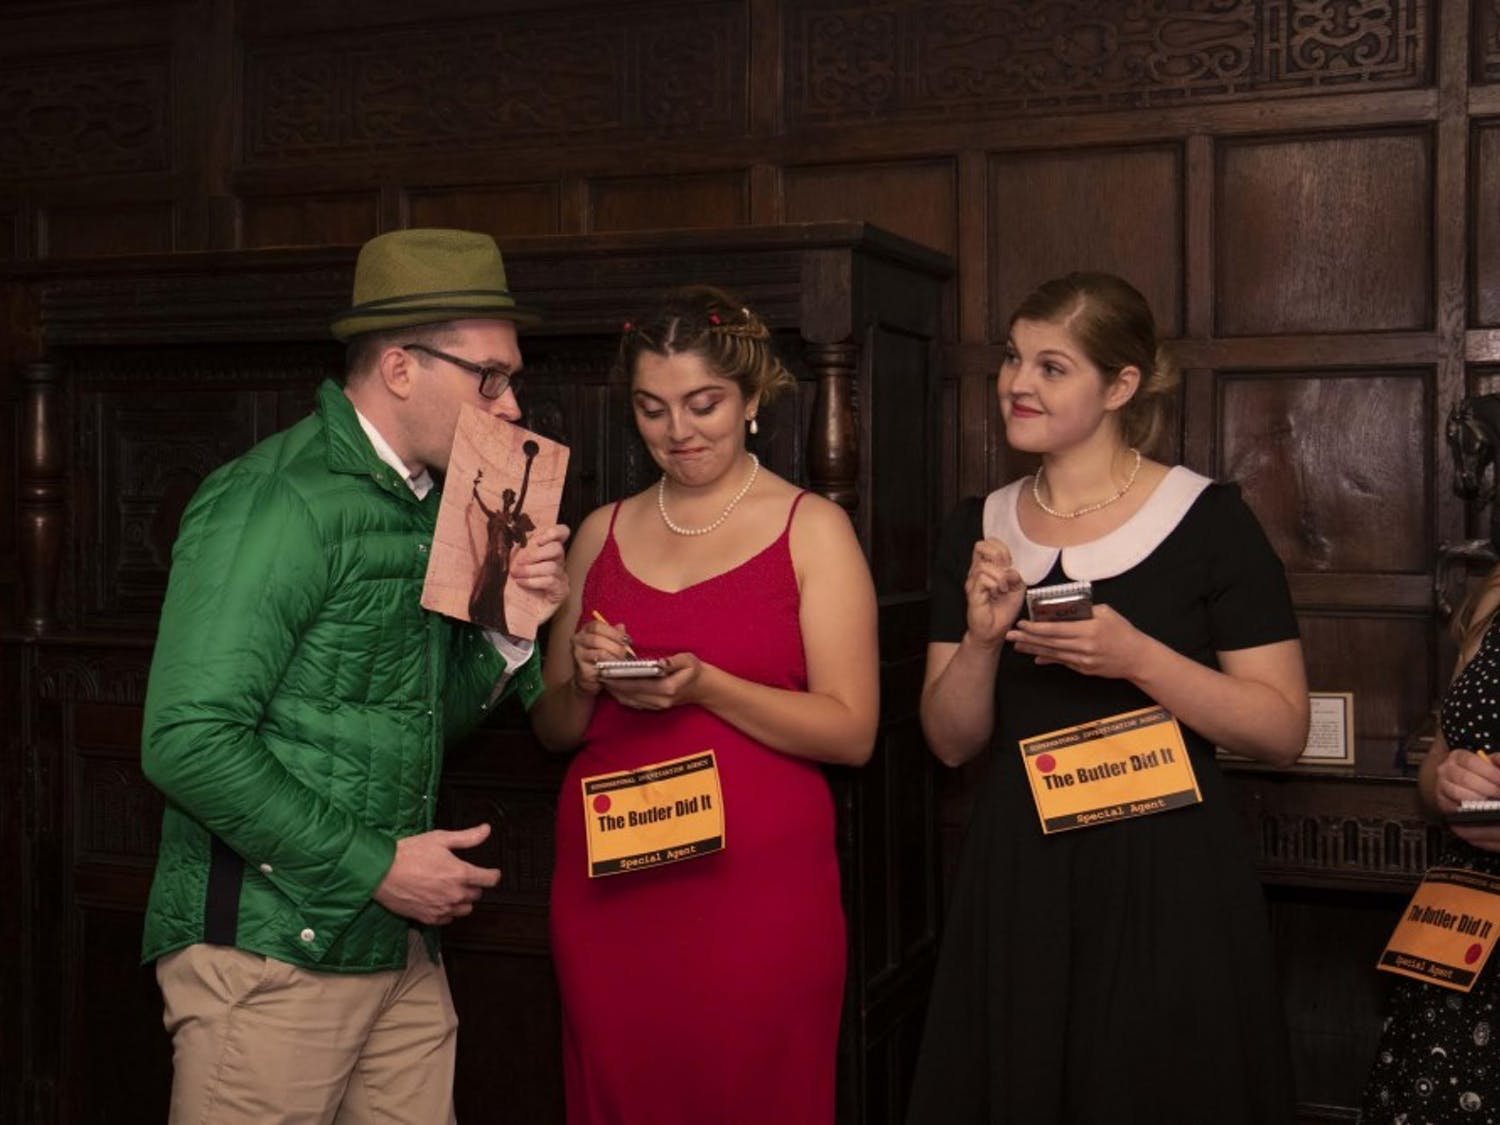 Participants in the Clue event in the fall of 2018 Photo by Aleah Howell